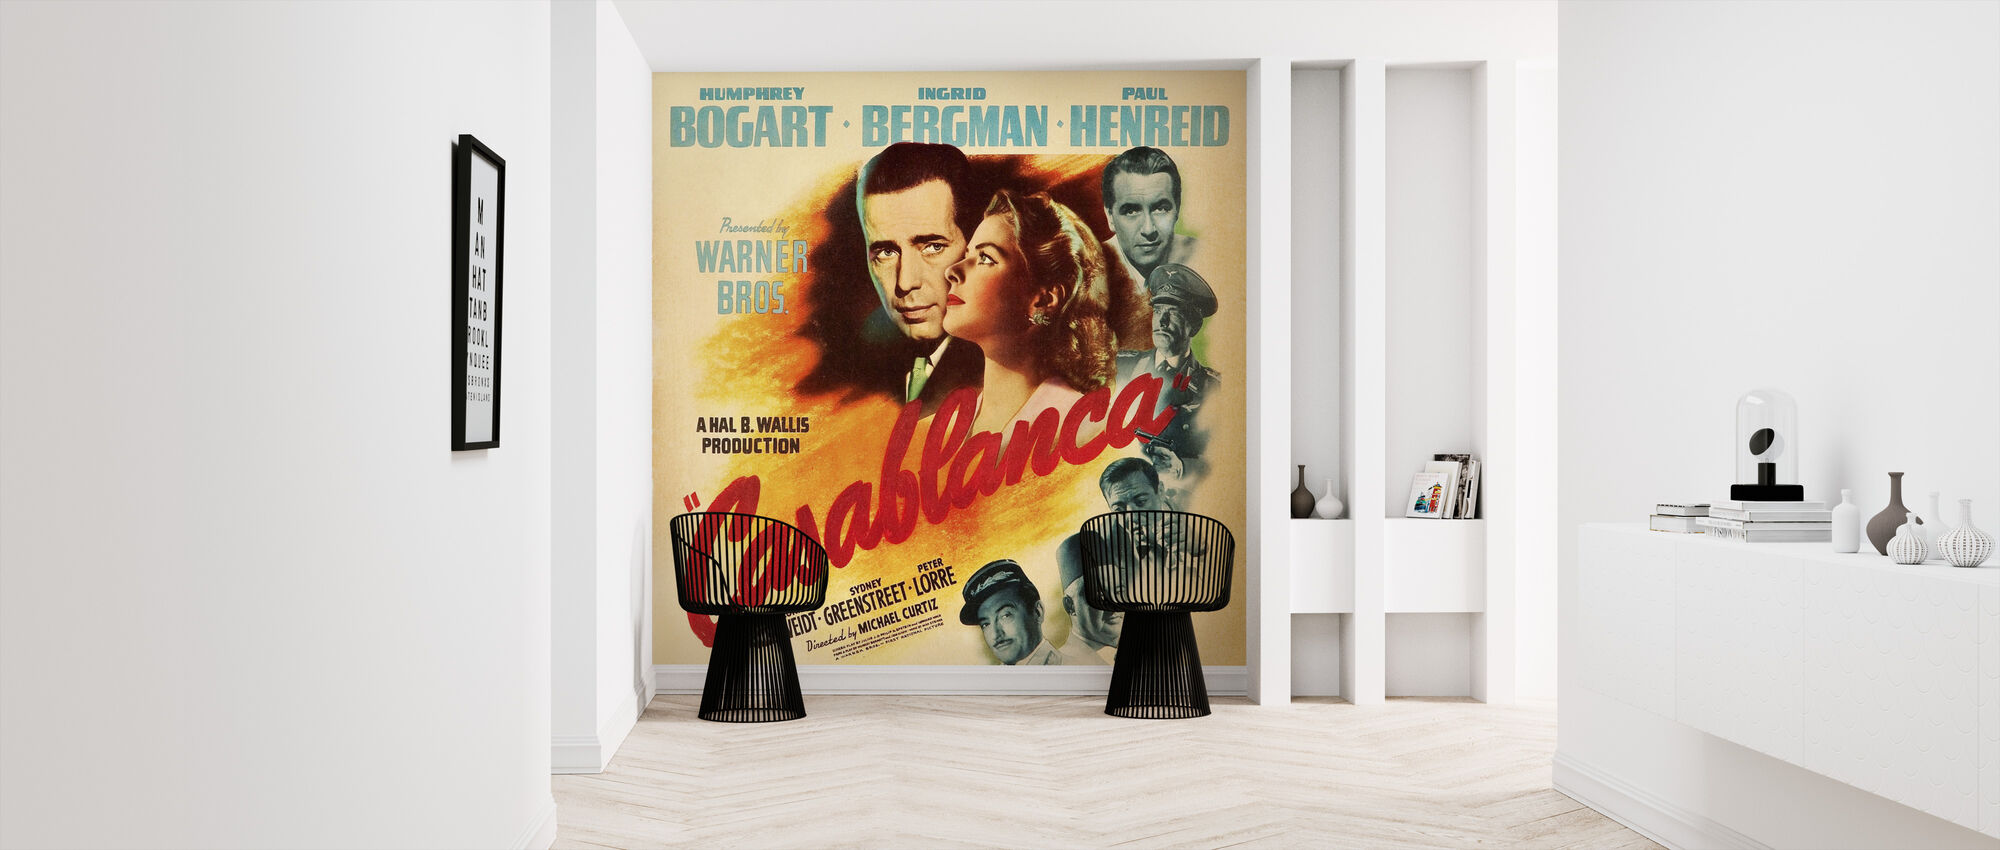 Movie Poster Casablanca - Wallpaper - Hallway